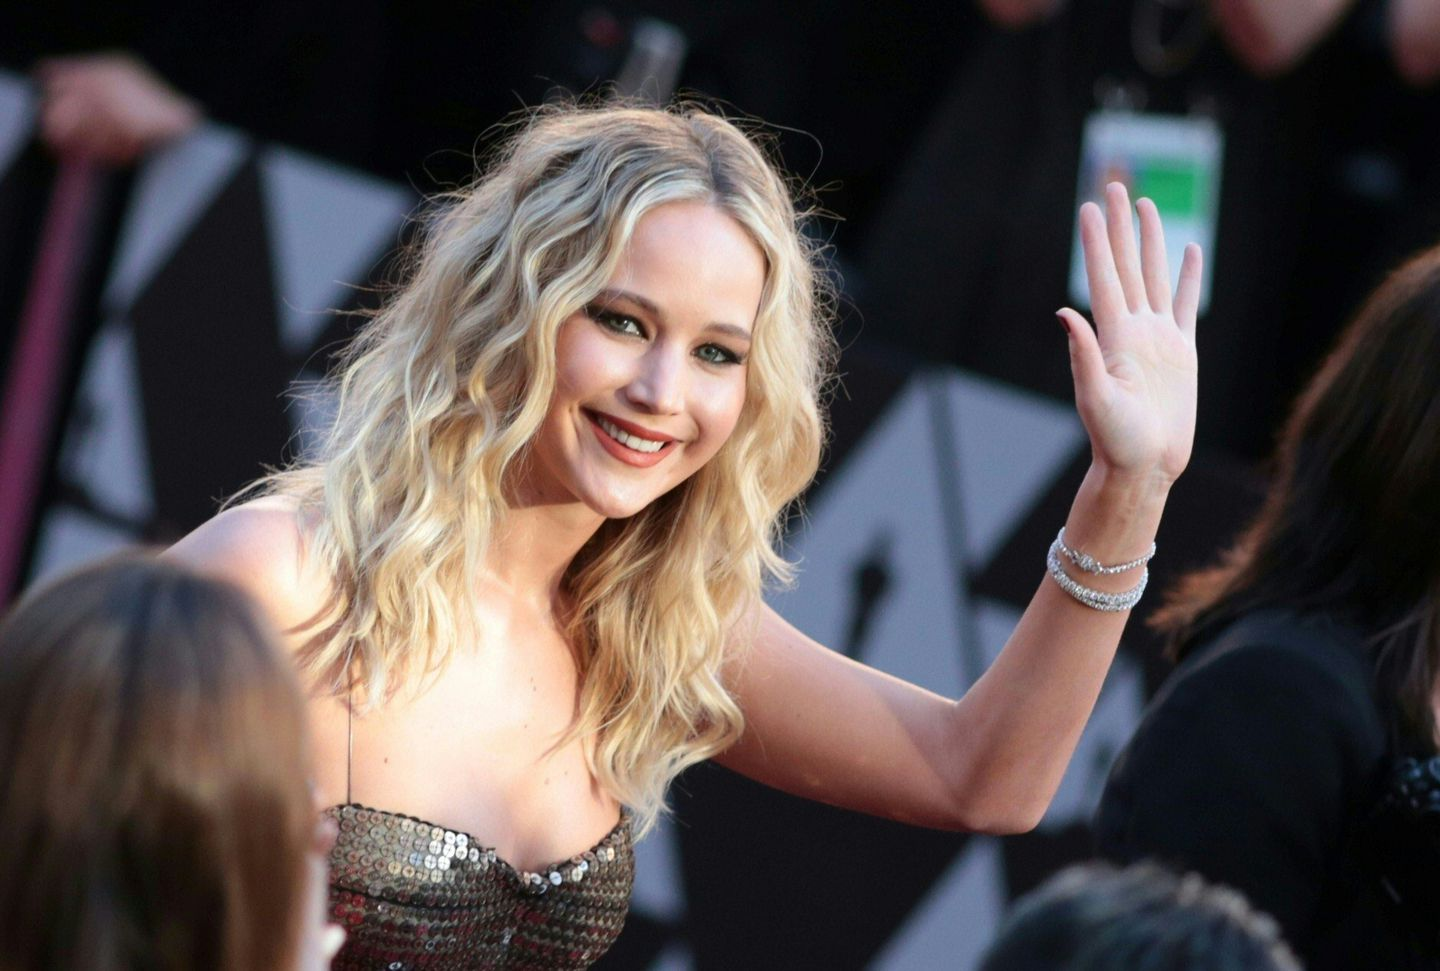 Jennifer Lawrence S Fiance Cooke Moroney Spent His Childhood In Vermont The Boston Globe